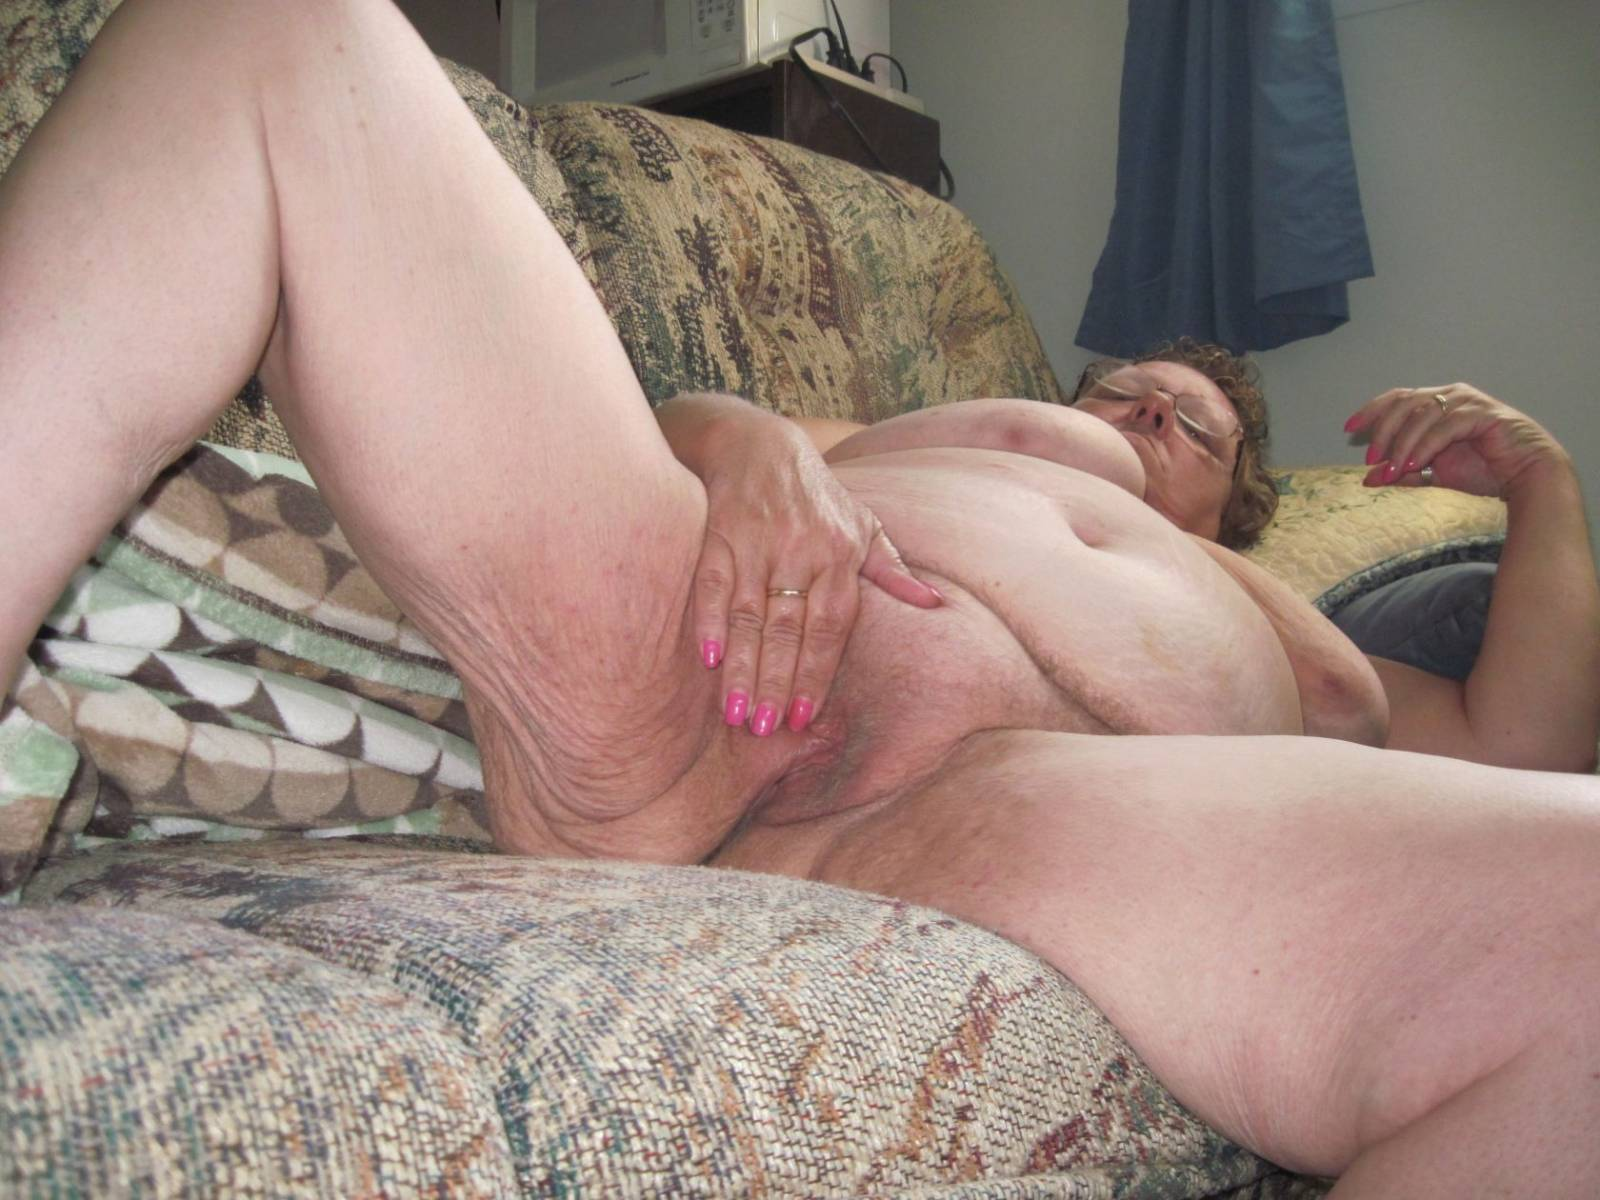 Get french granny fucked threesome xxx for free